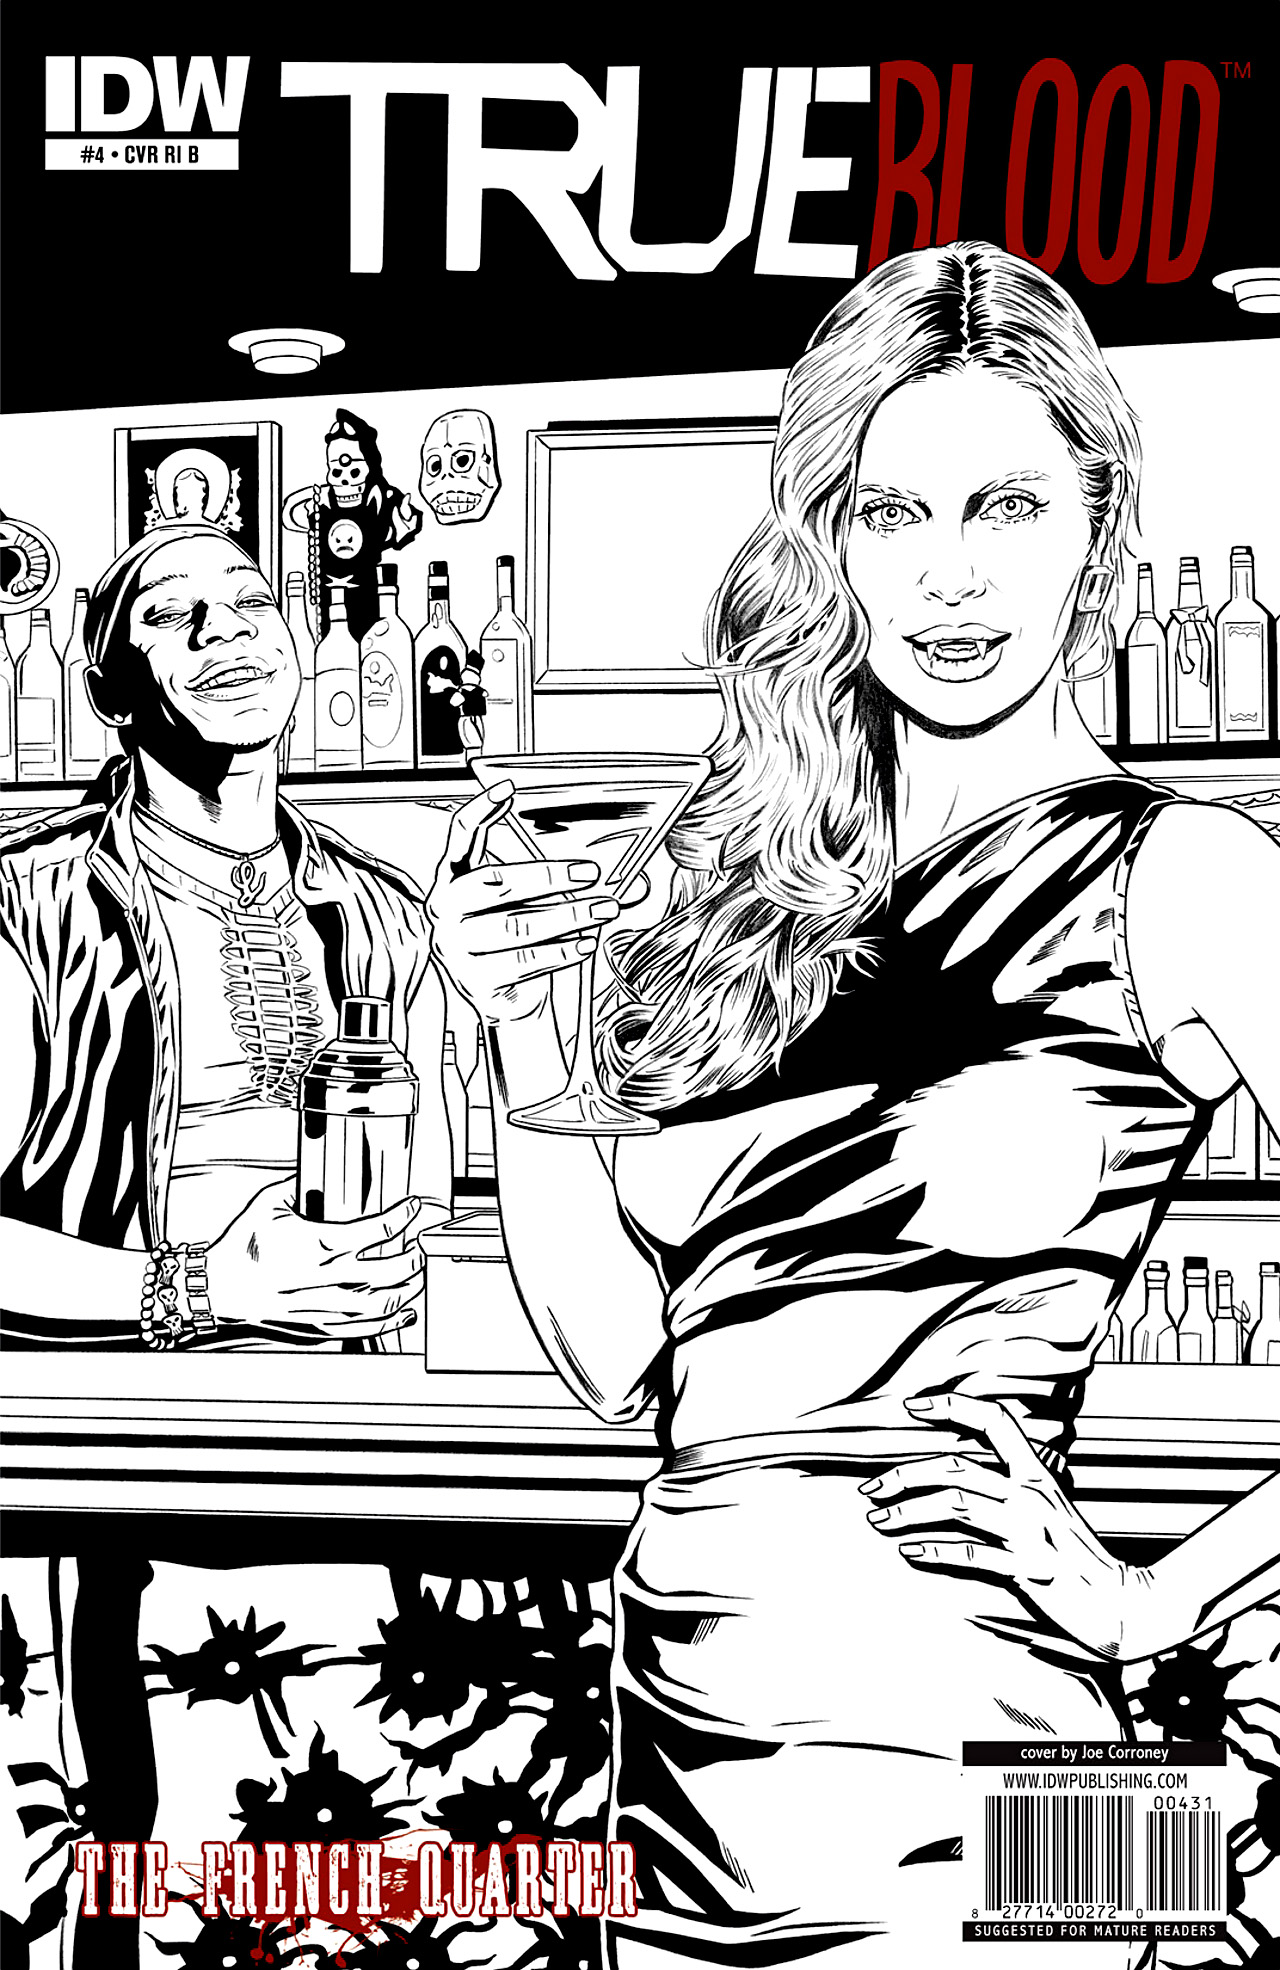 Read online True Blood: French Quarter comic -  Issue #4 - 4